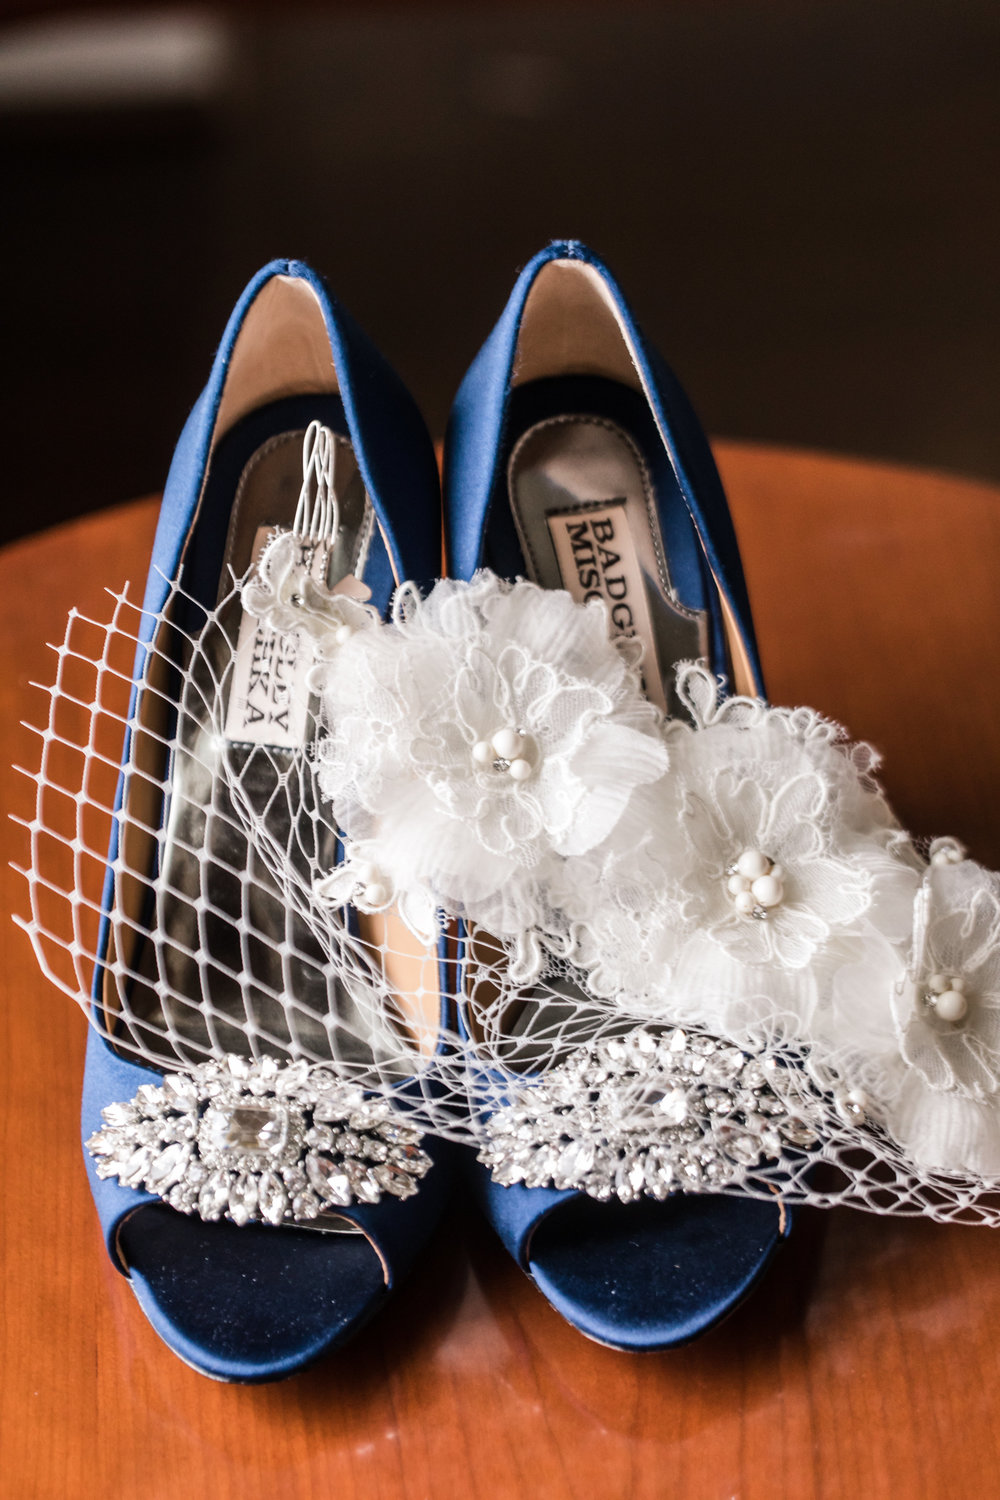 Blue Wedding Bridal Shoes - Badgley Mischka - A Classic George Washington Hotel Wedding - Photography by Marirosa